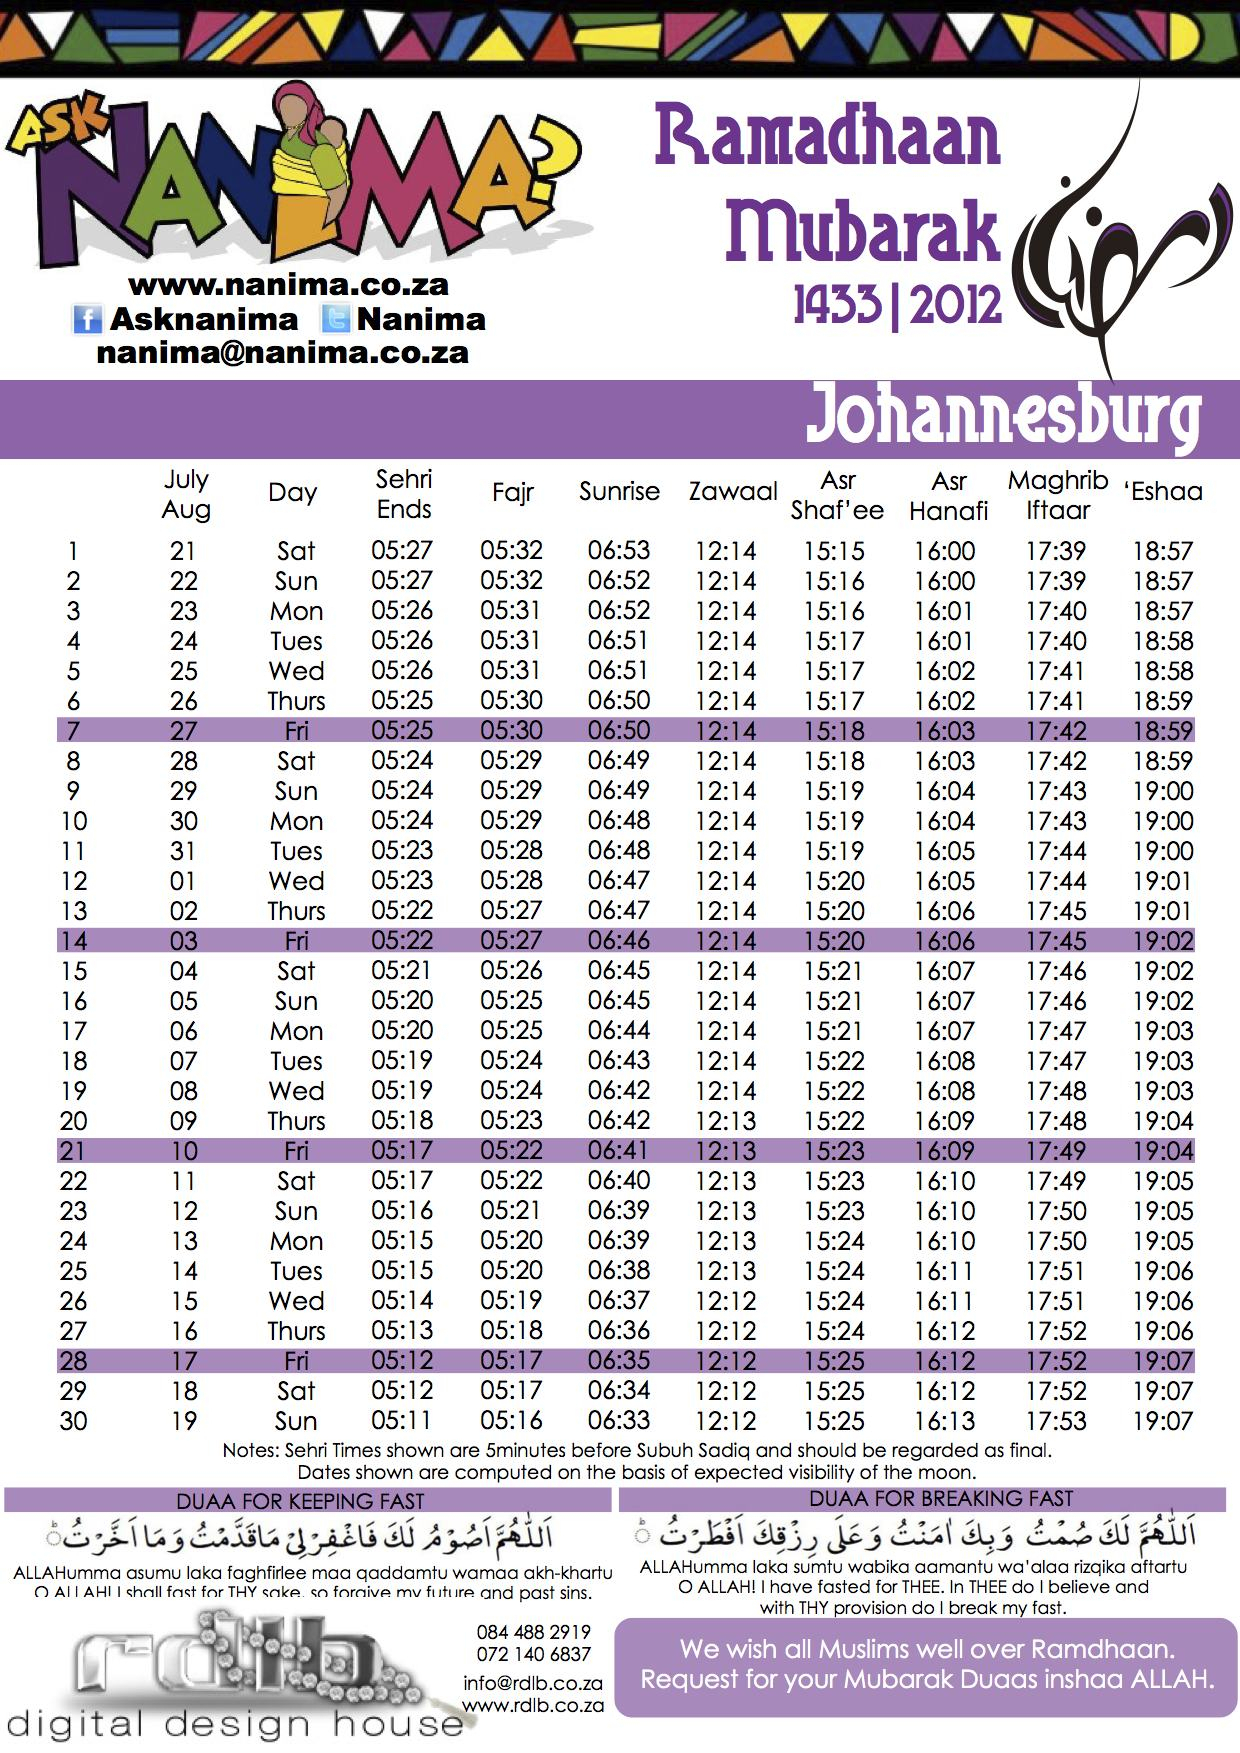 Johannesburg Ramadan Timetable 2012 1433 | Ask Nanima? throughout Ramadan Time Table 2015